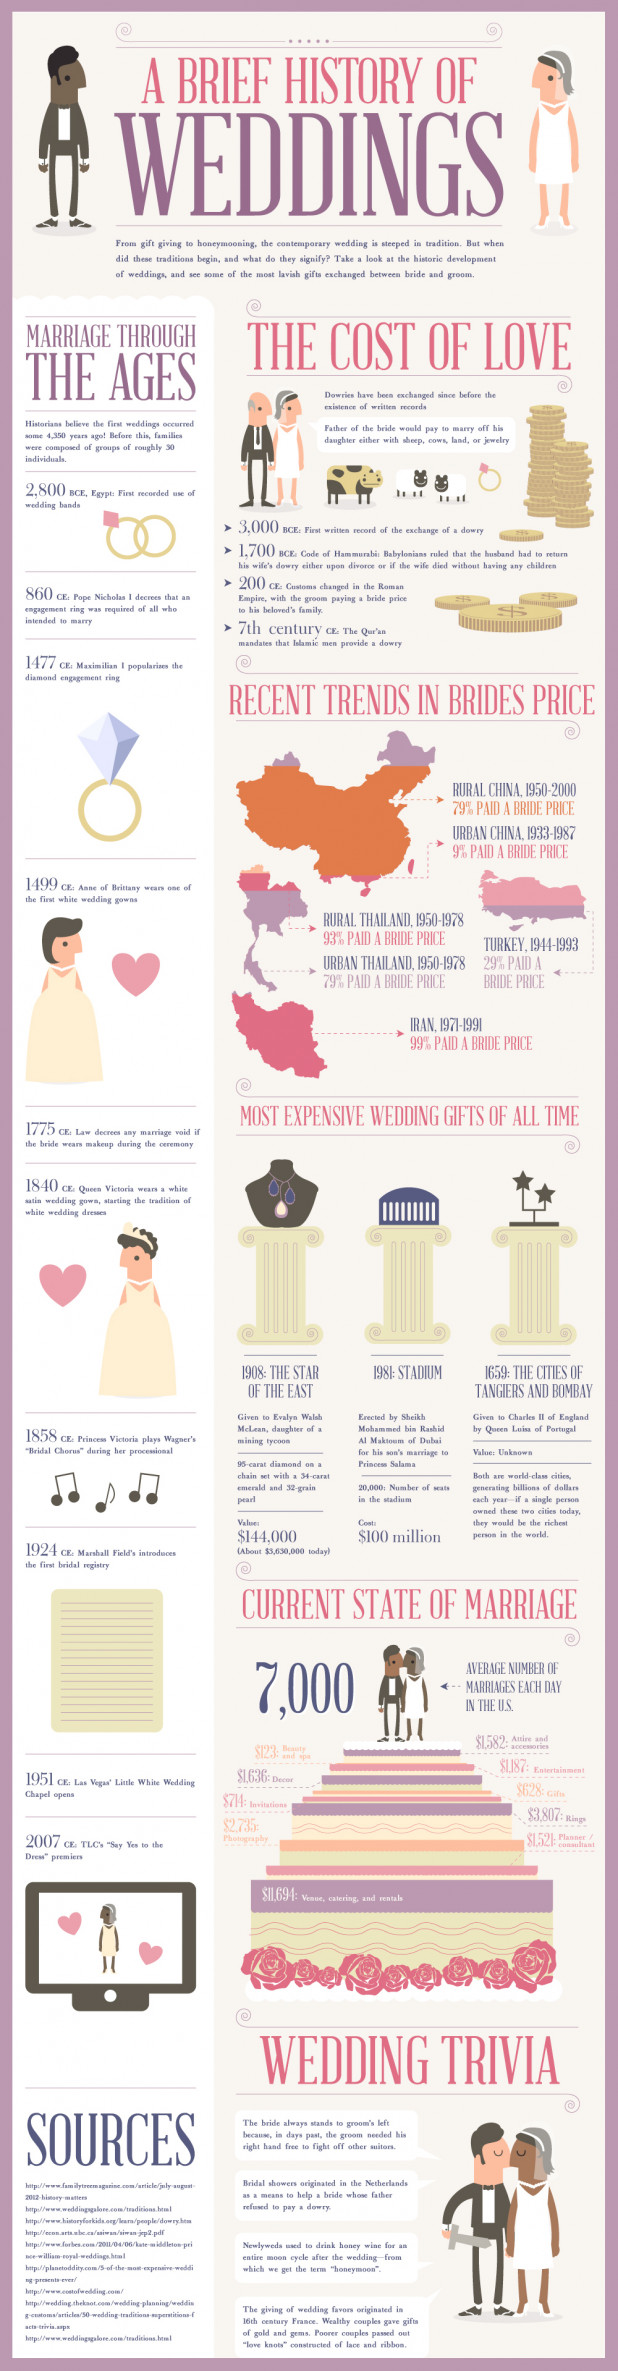 Wedding Gift Etiquette Cost : Everything You Need to Know About Weddings in 14 Infographics ...